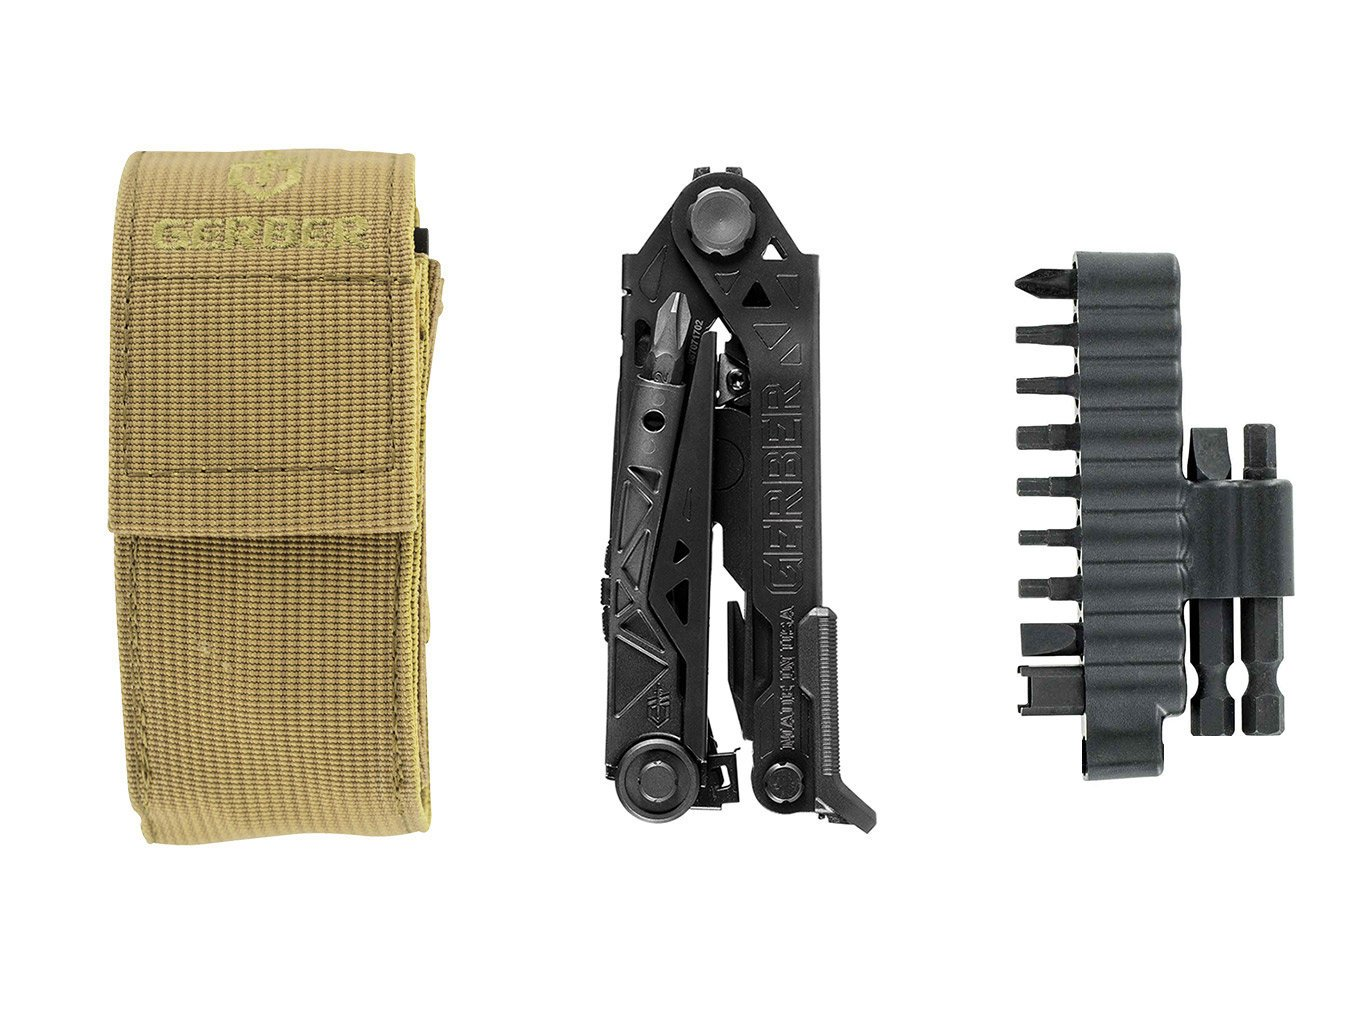 Gerber Center-Drive Black Multi-Tool - M4 Bit Set, Coyote Brown US-Made Sheath (30-001426) by Gerber (Image #1)